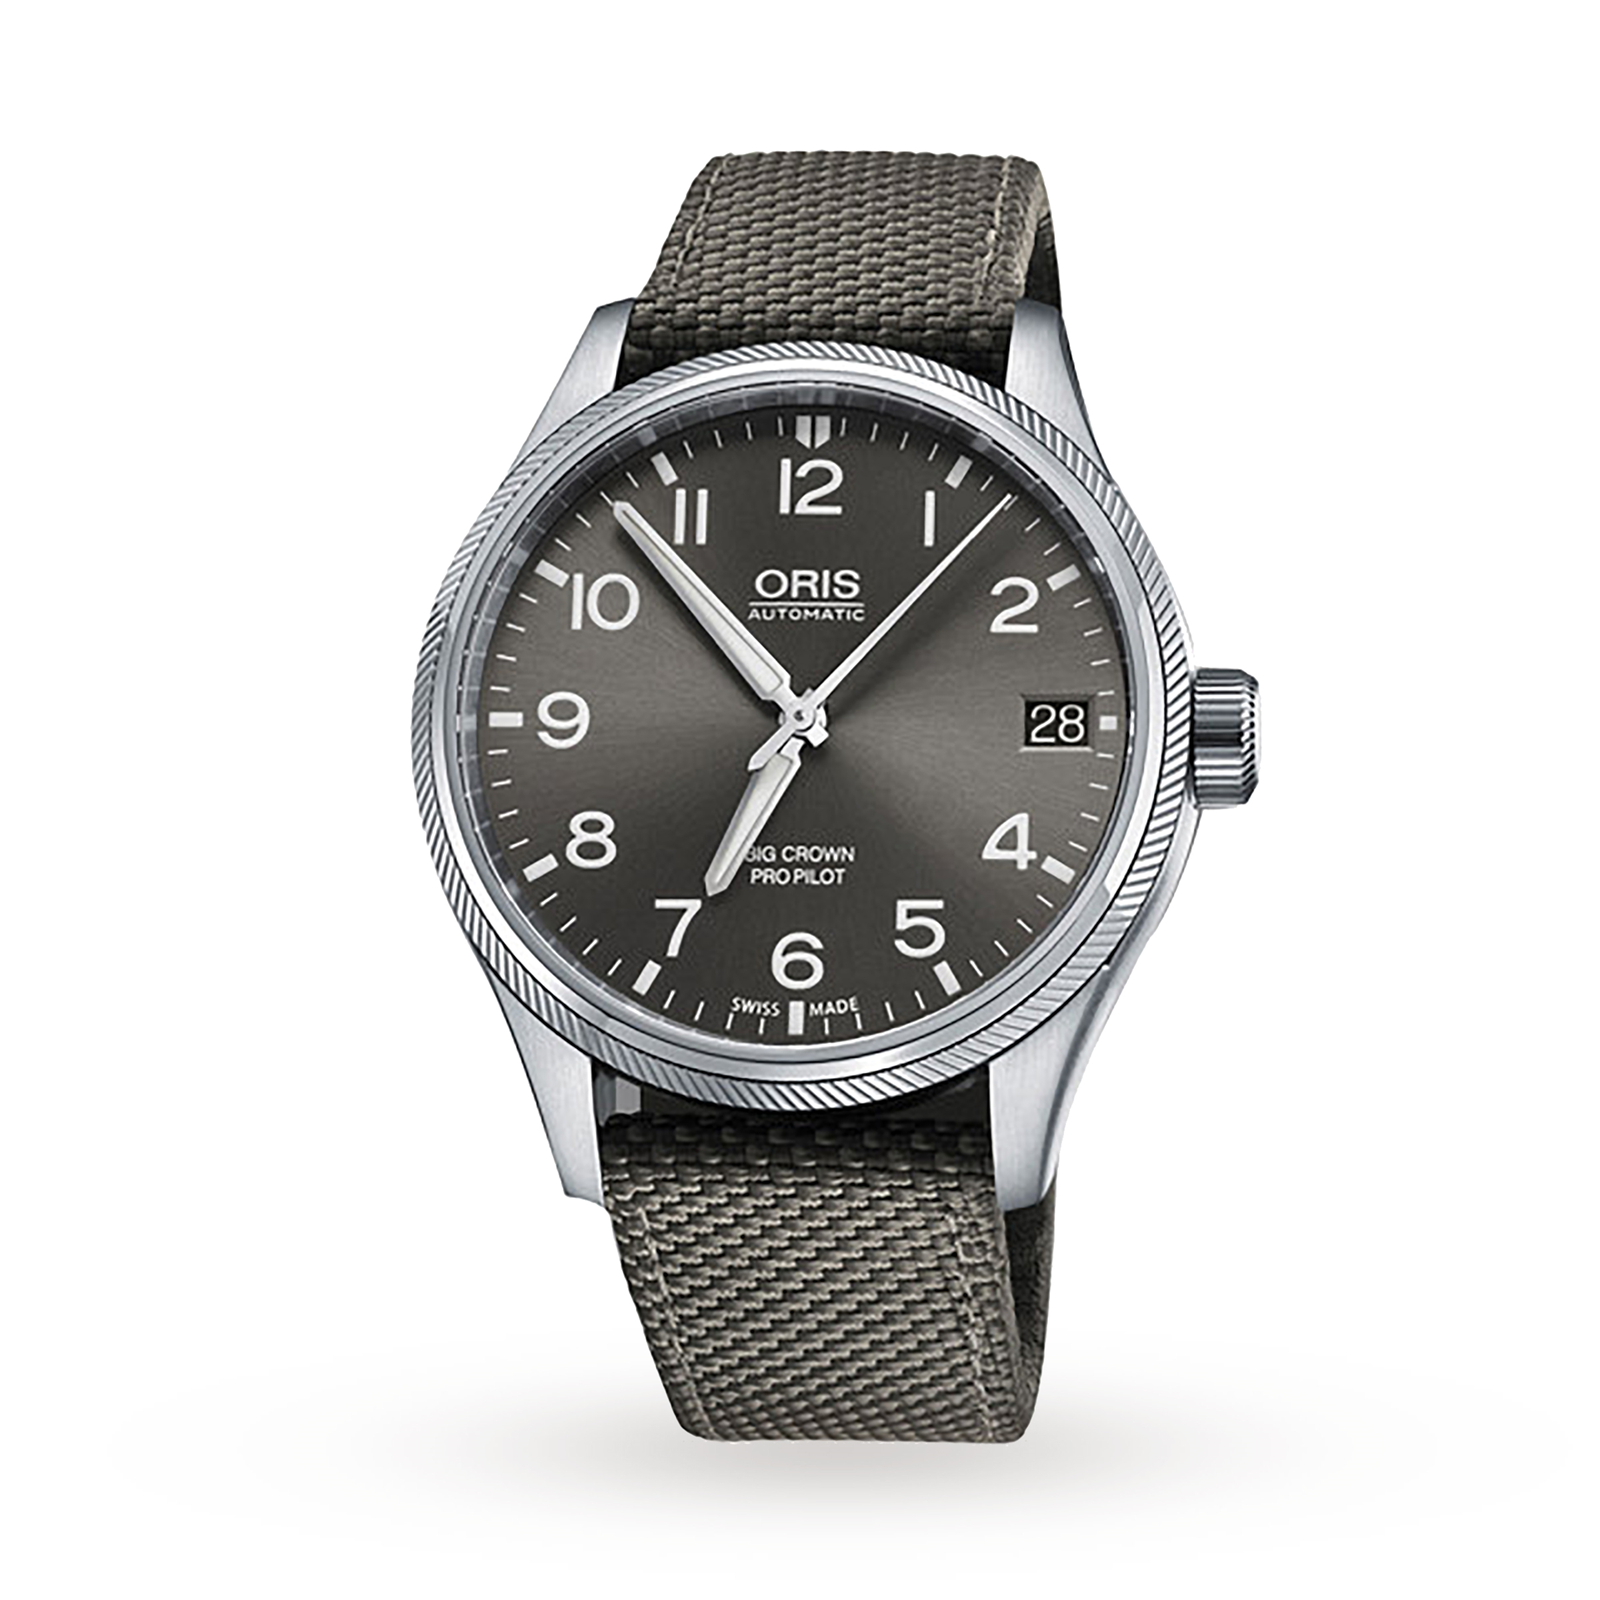 Oris Pro Pilot Mens Watches